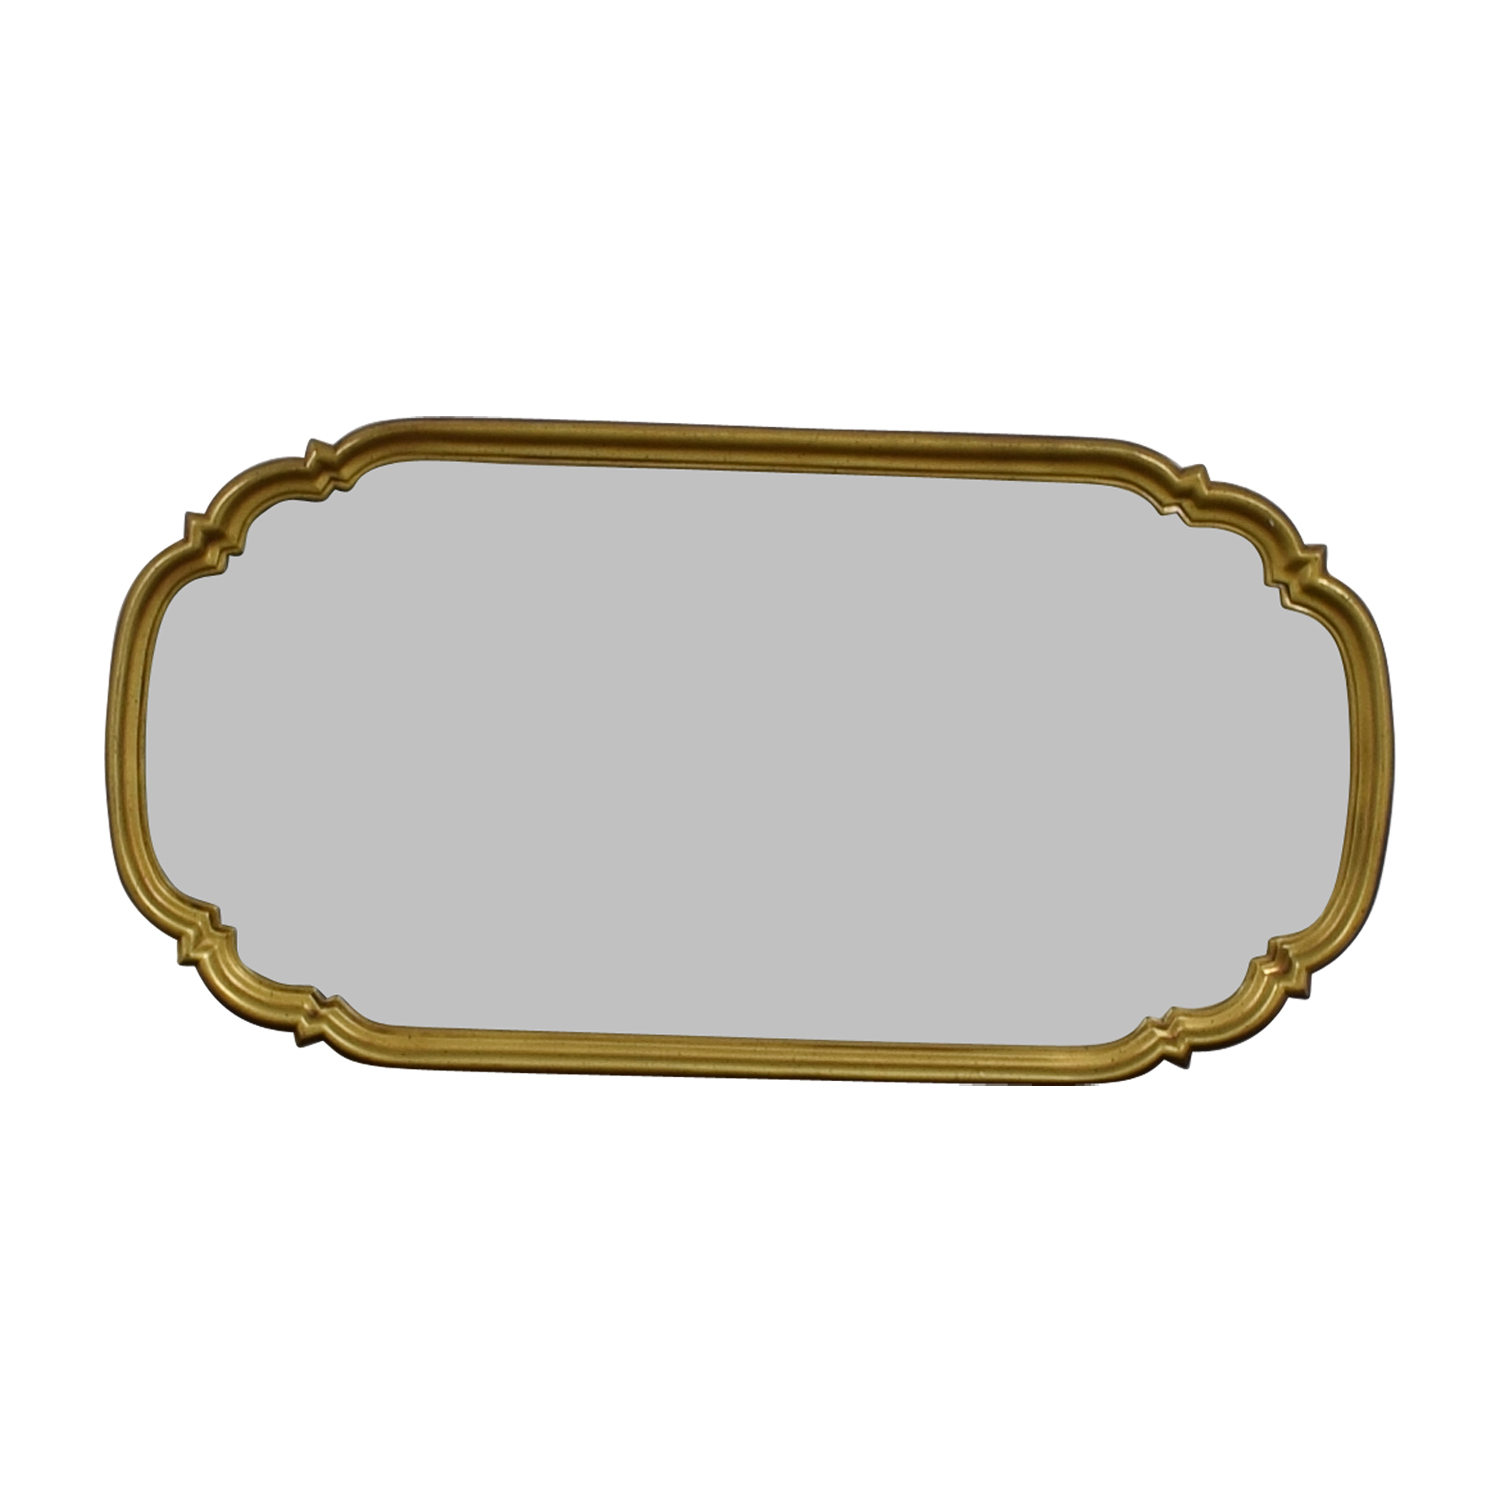 Oval Ornate Gold Framed Mirror dimensions